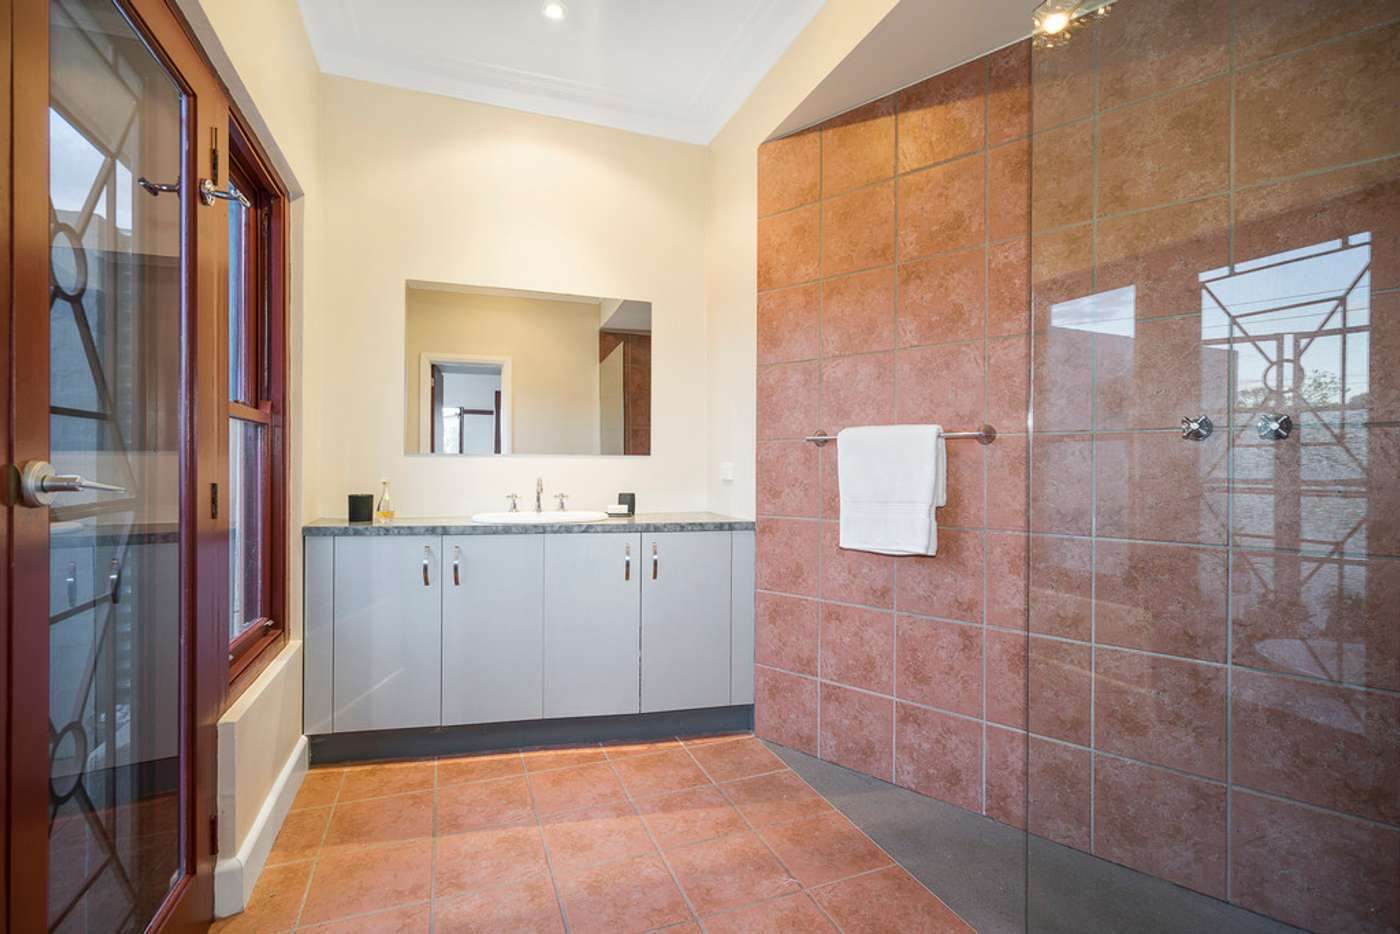 Seventh view of Homely house listing, 637 Sackville Street, Albury NSW 2640